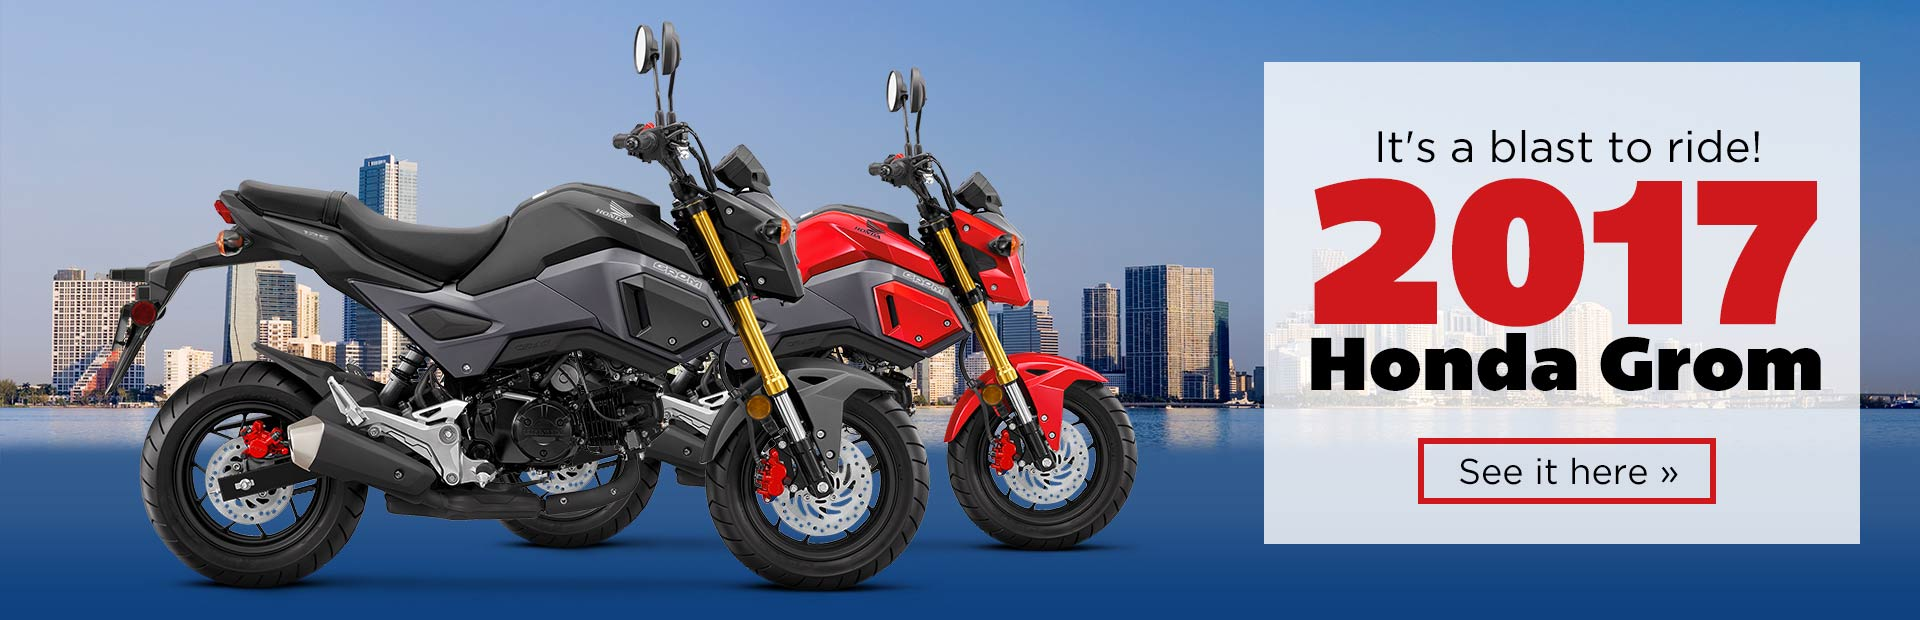 The 2017 Honda Grom is a blast to ride! Click here to view the model.